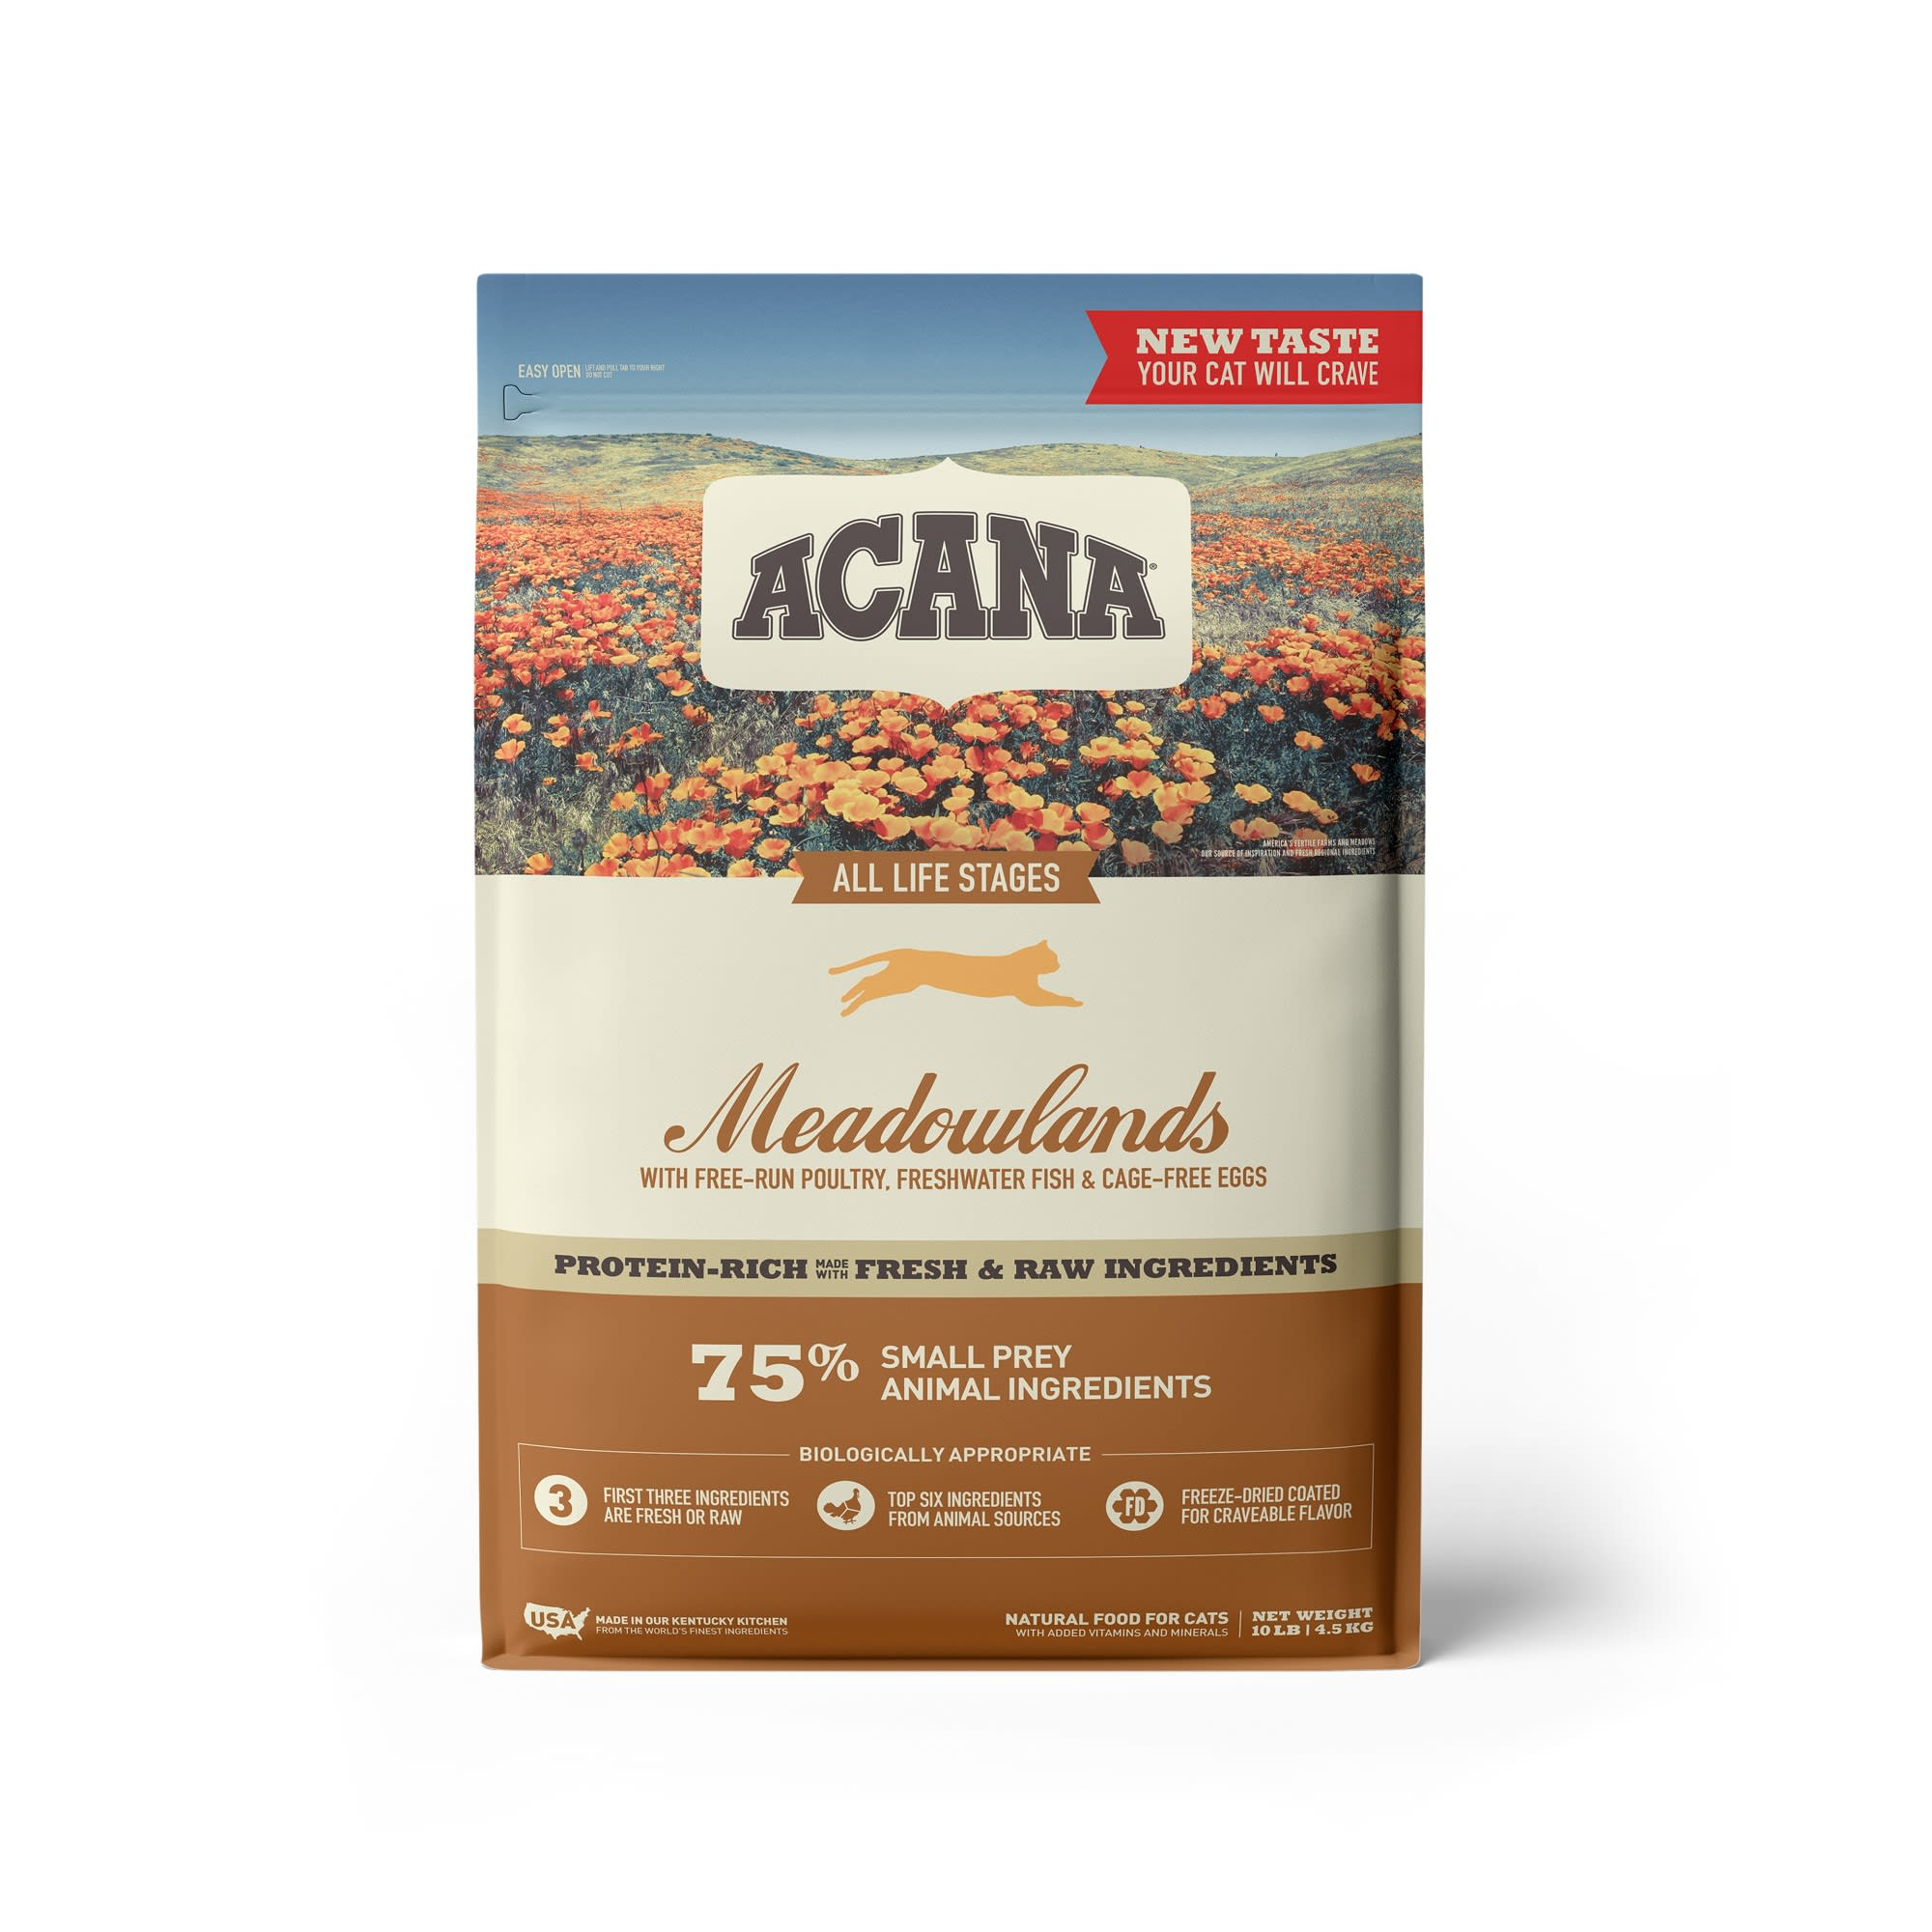 ACANA Grain-Free Meadowlands Chicken Turkey Fish and Cage-Free Eggs Dry Cat Food, 10 lbs.